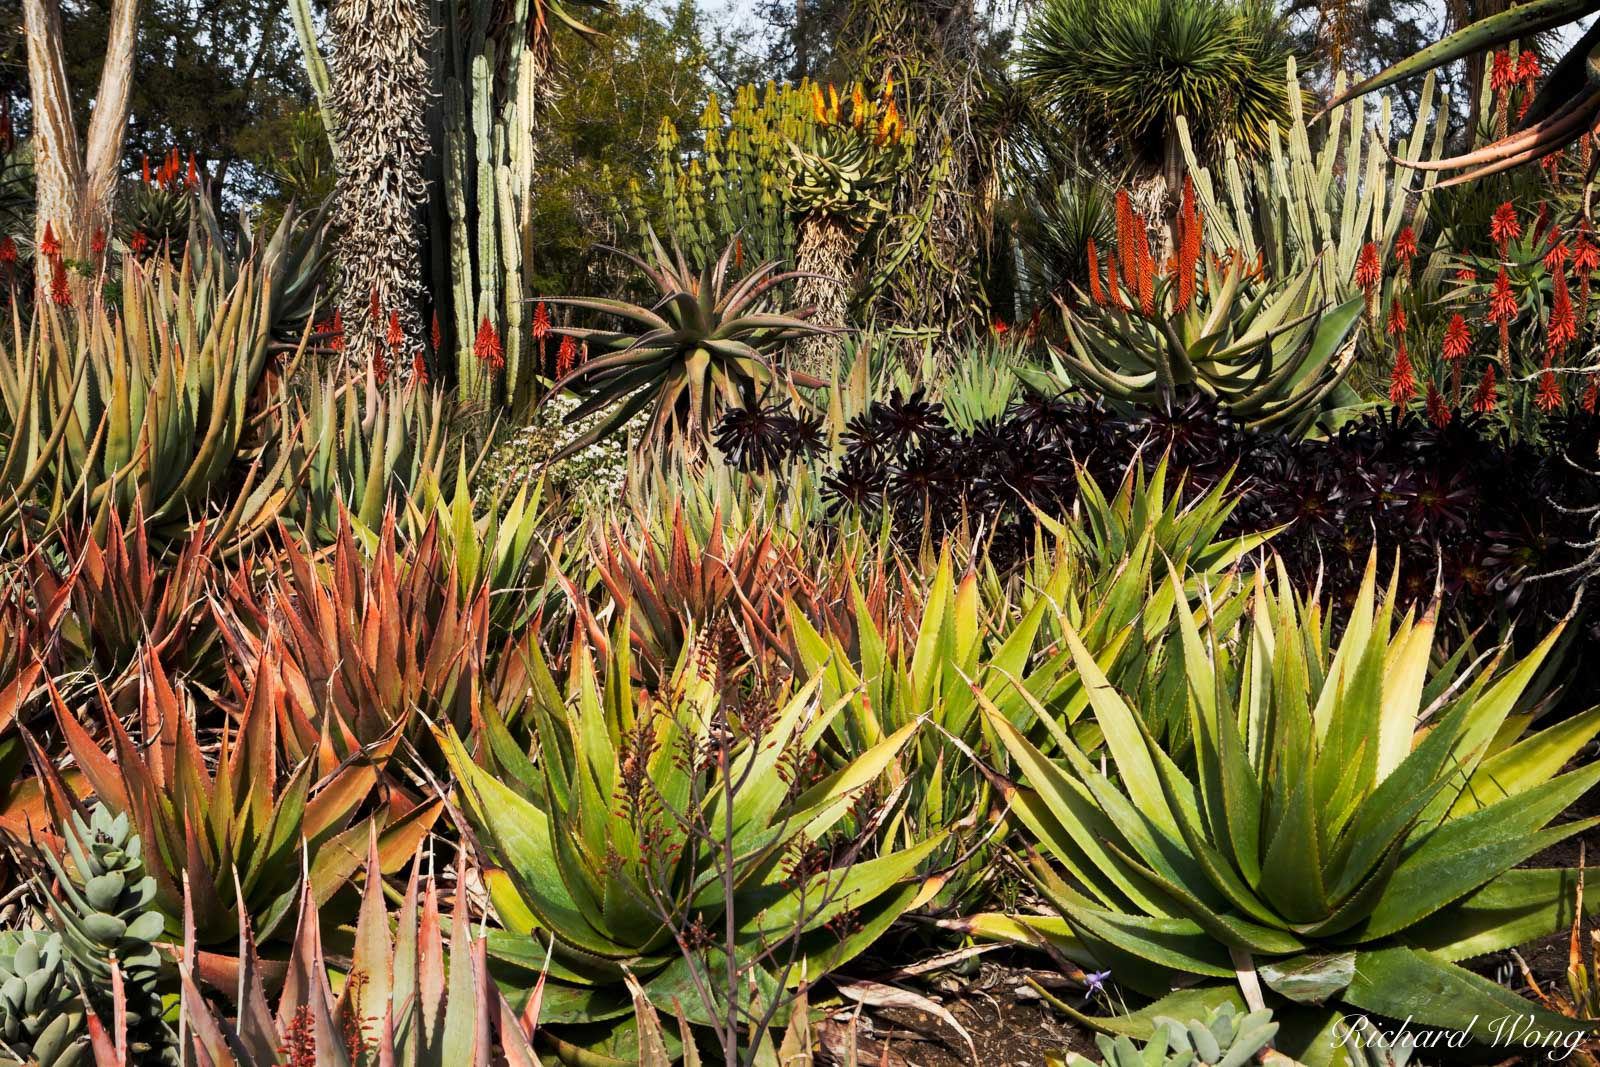 Aloe Vera Flowers Blooming in Desert Garden at The Huntington Botanical Gardens, San Marino, California, photo, photo